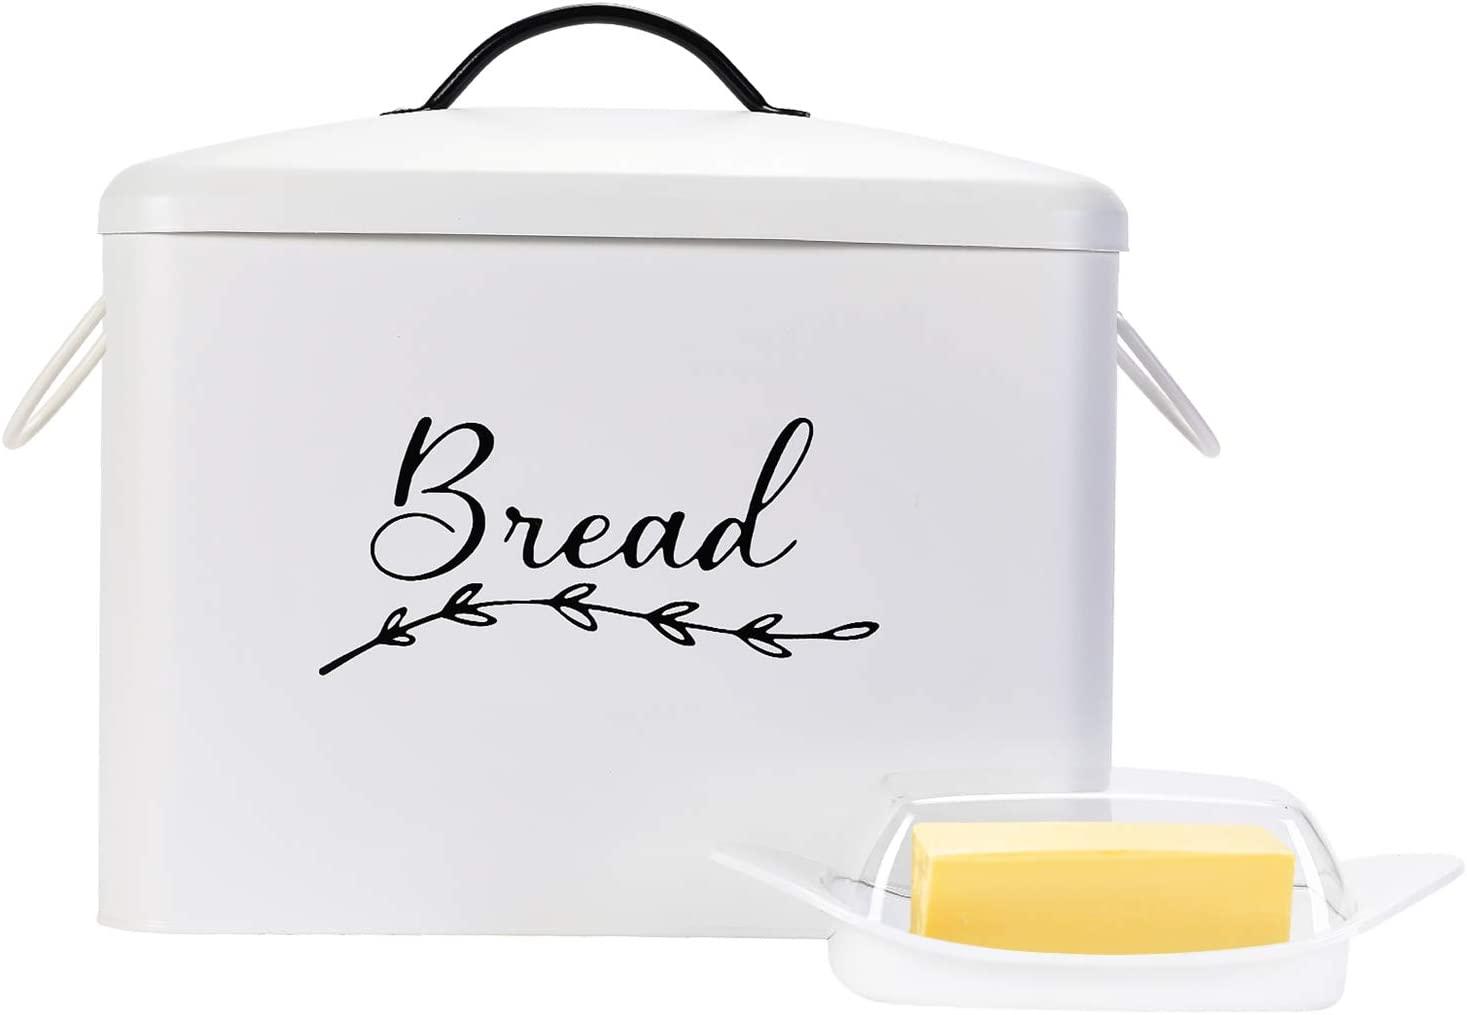 Home & Abode Bread Box For Kitchen Countertop – Large, White, Metal, With Handles – Farmhouse Decor